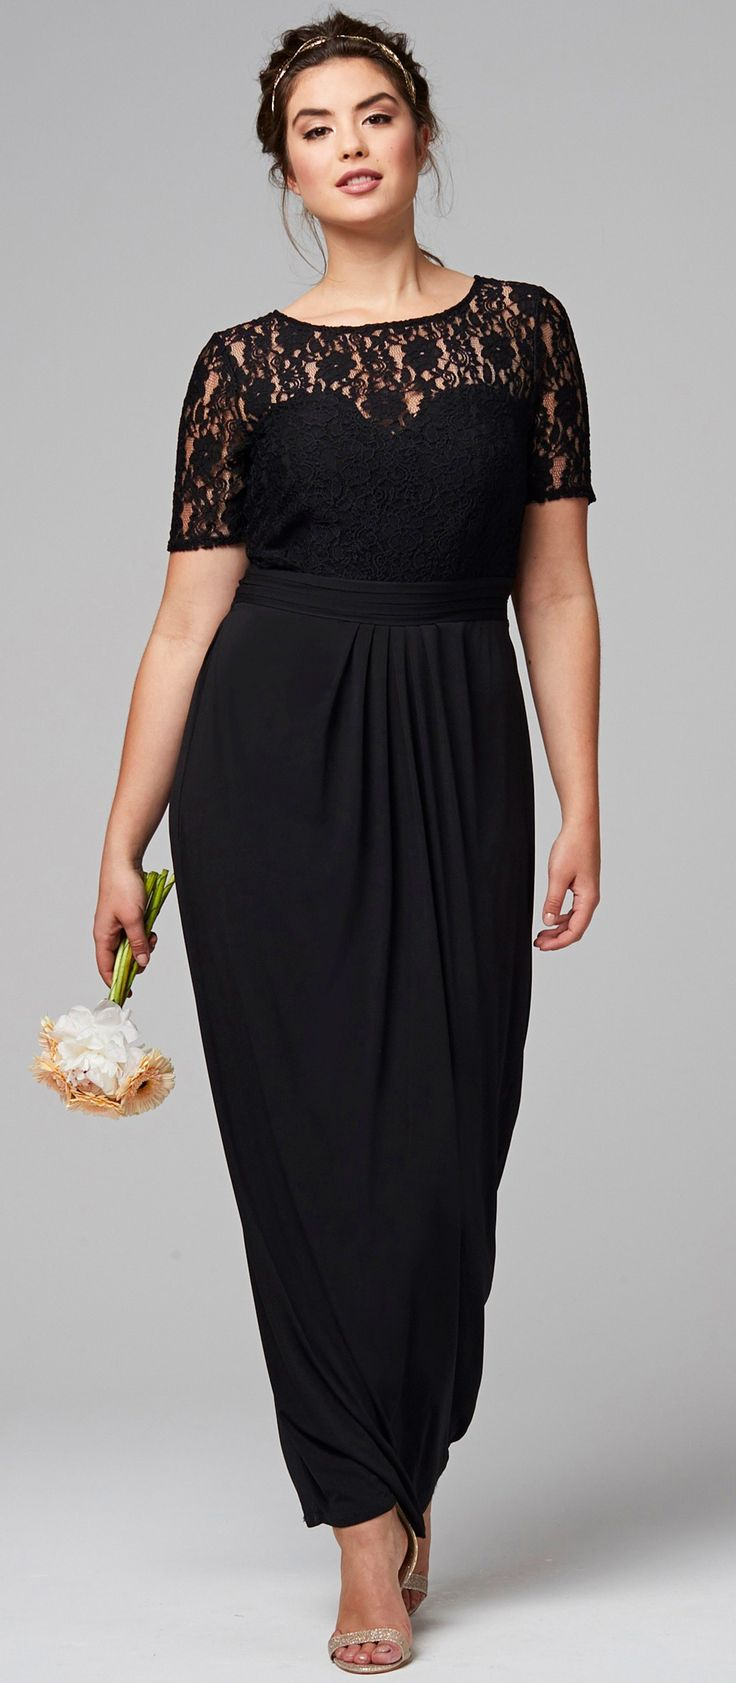 Best 25+ Plus size dresses ideas on Pinterest